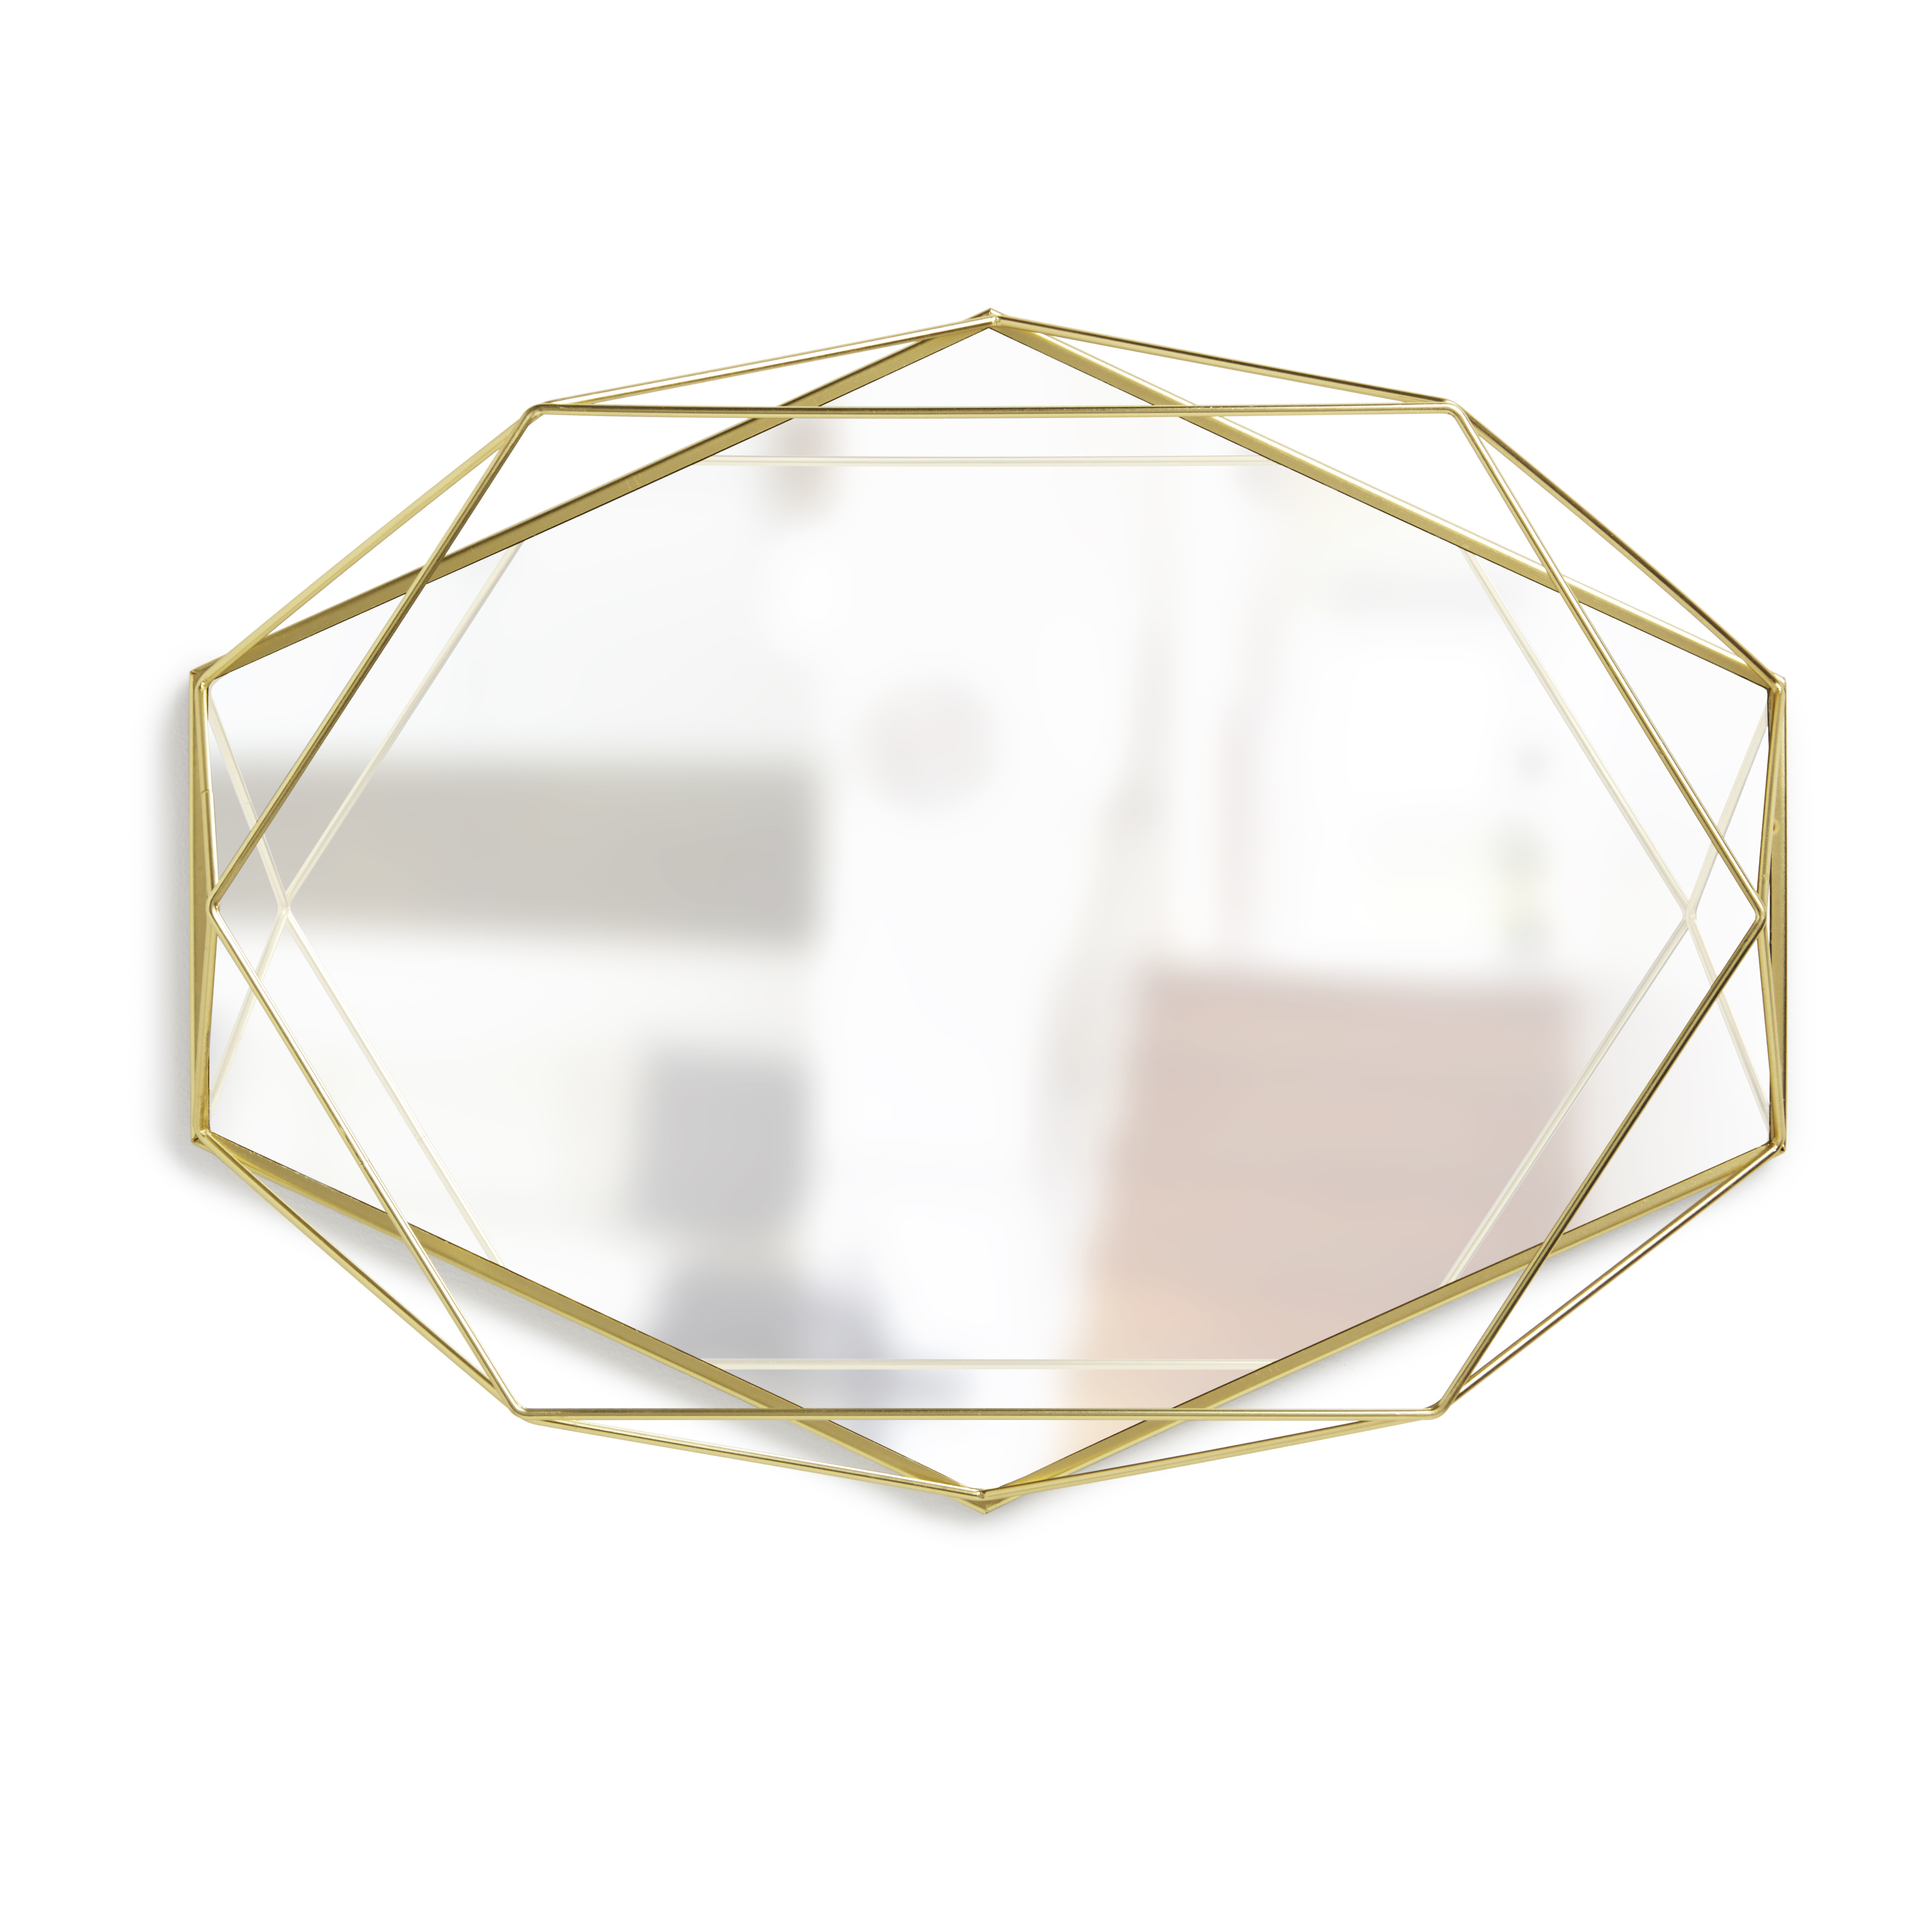 Prisma Mirror/tray 57 X 43 Cm – Brass In 2019 | Products With Dekalb Modern & Contemporary Distressed Accent Mirrors (Image 15 of 20)